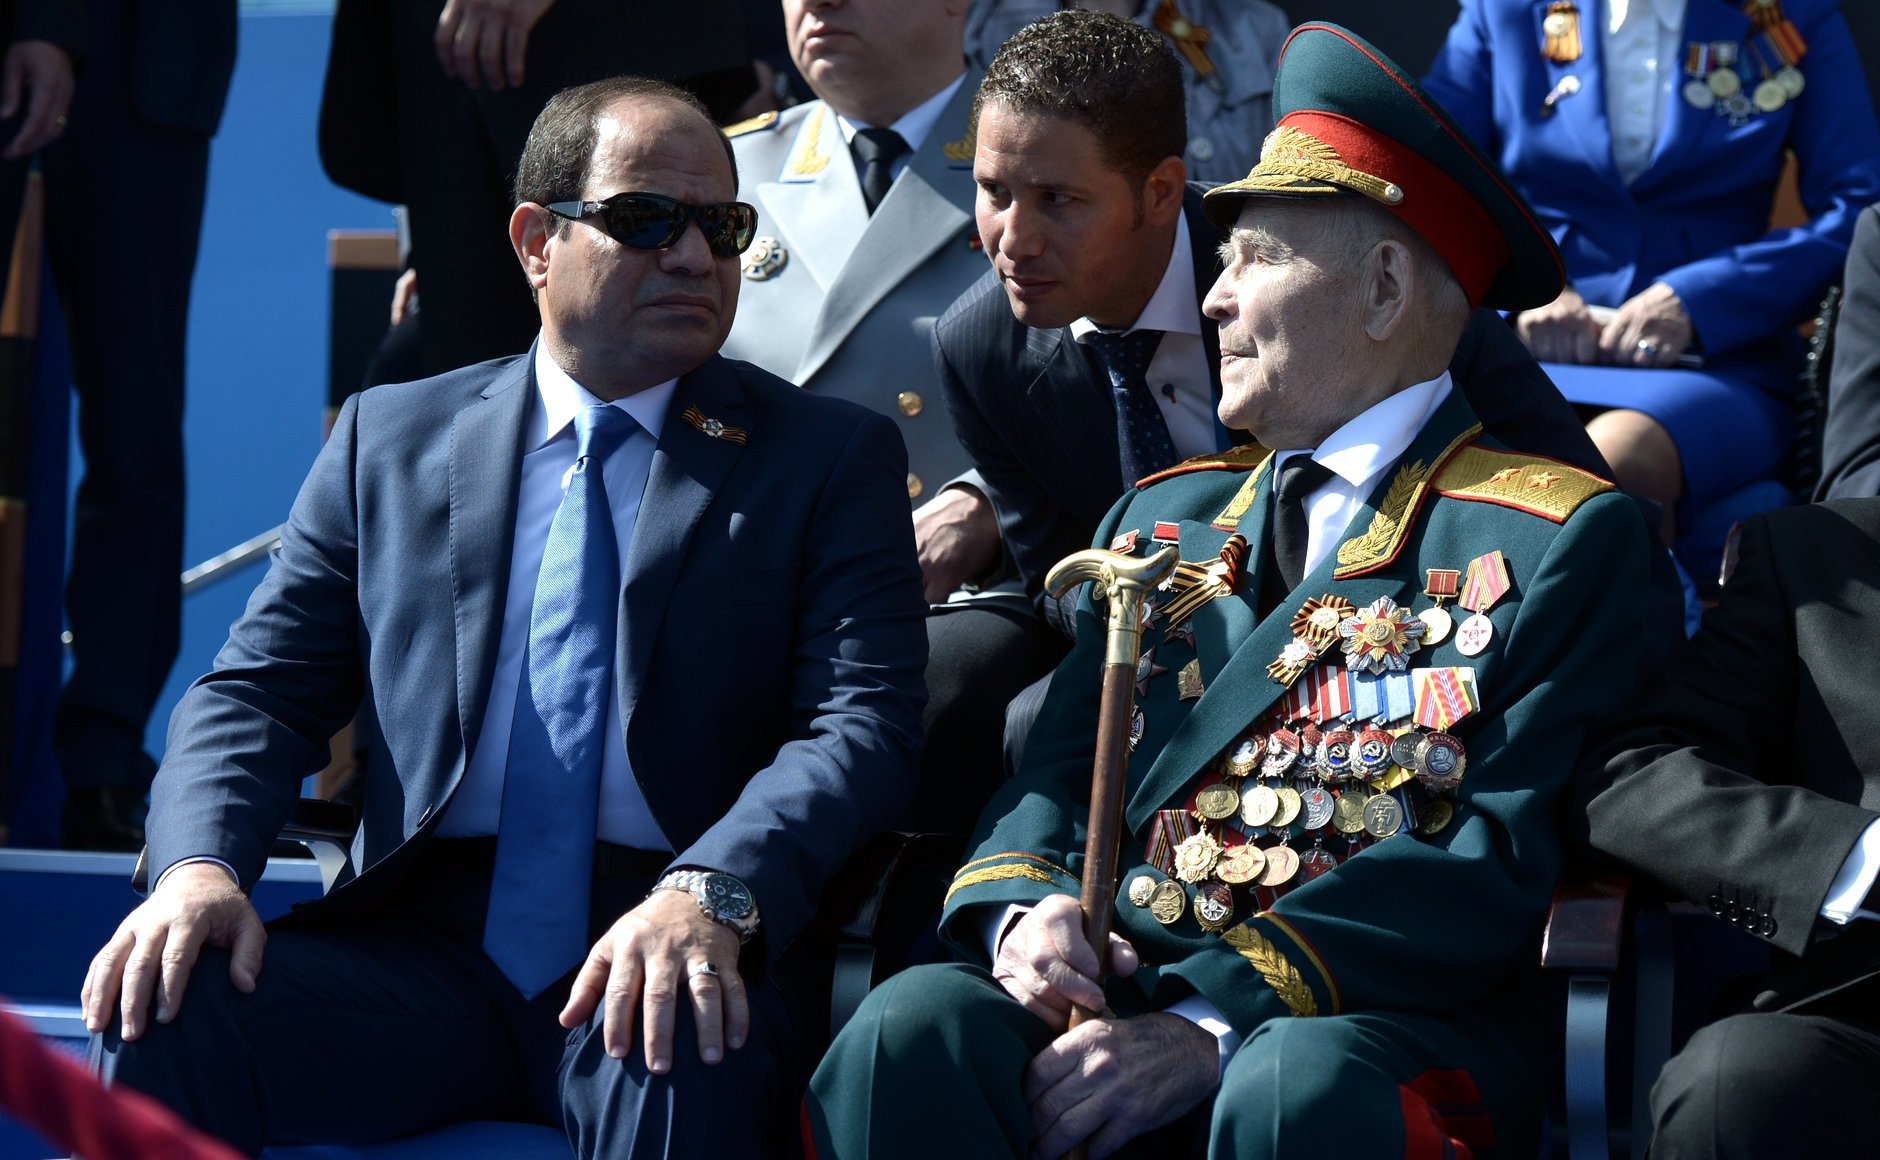 President of Egypt Abdel Fattah el-Sisi (left) at the military parade to mark the 70th anniversary of Victory in the 1941–1945 Great Patriotic War. Photo: kremlin.ru